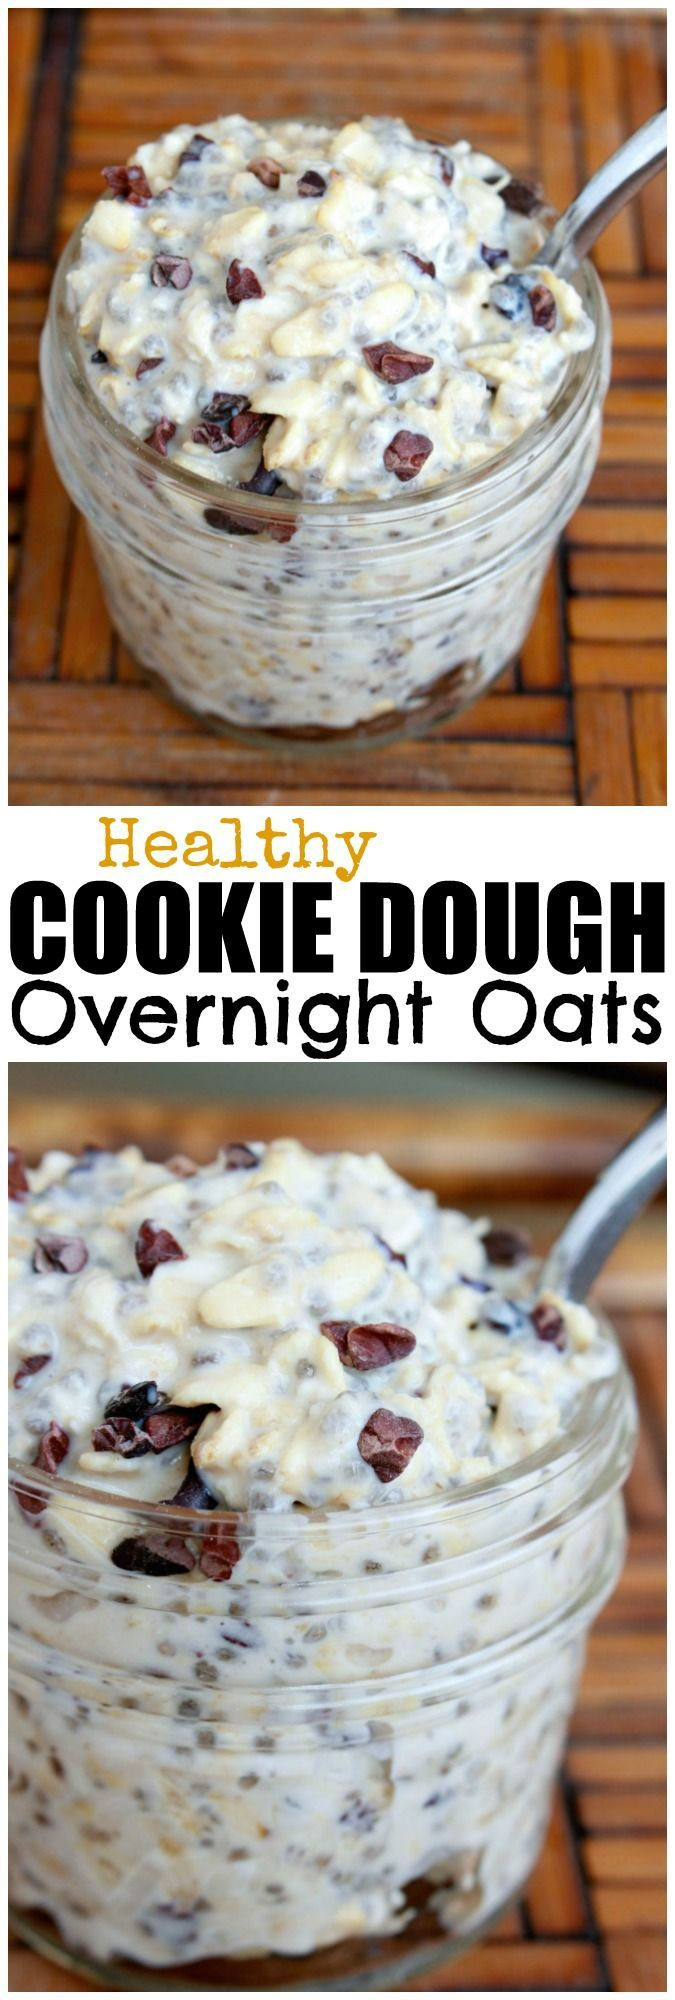 HEALTHY Cookie Dough Overnight Oats! I have such a sweet tooth and rarely have savory dishes for breakfast. That's why I LOVE this recipe, because the sweet chocolate and creamy cashew butter satisfy my sweet tooth while providing healthy fats and protein